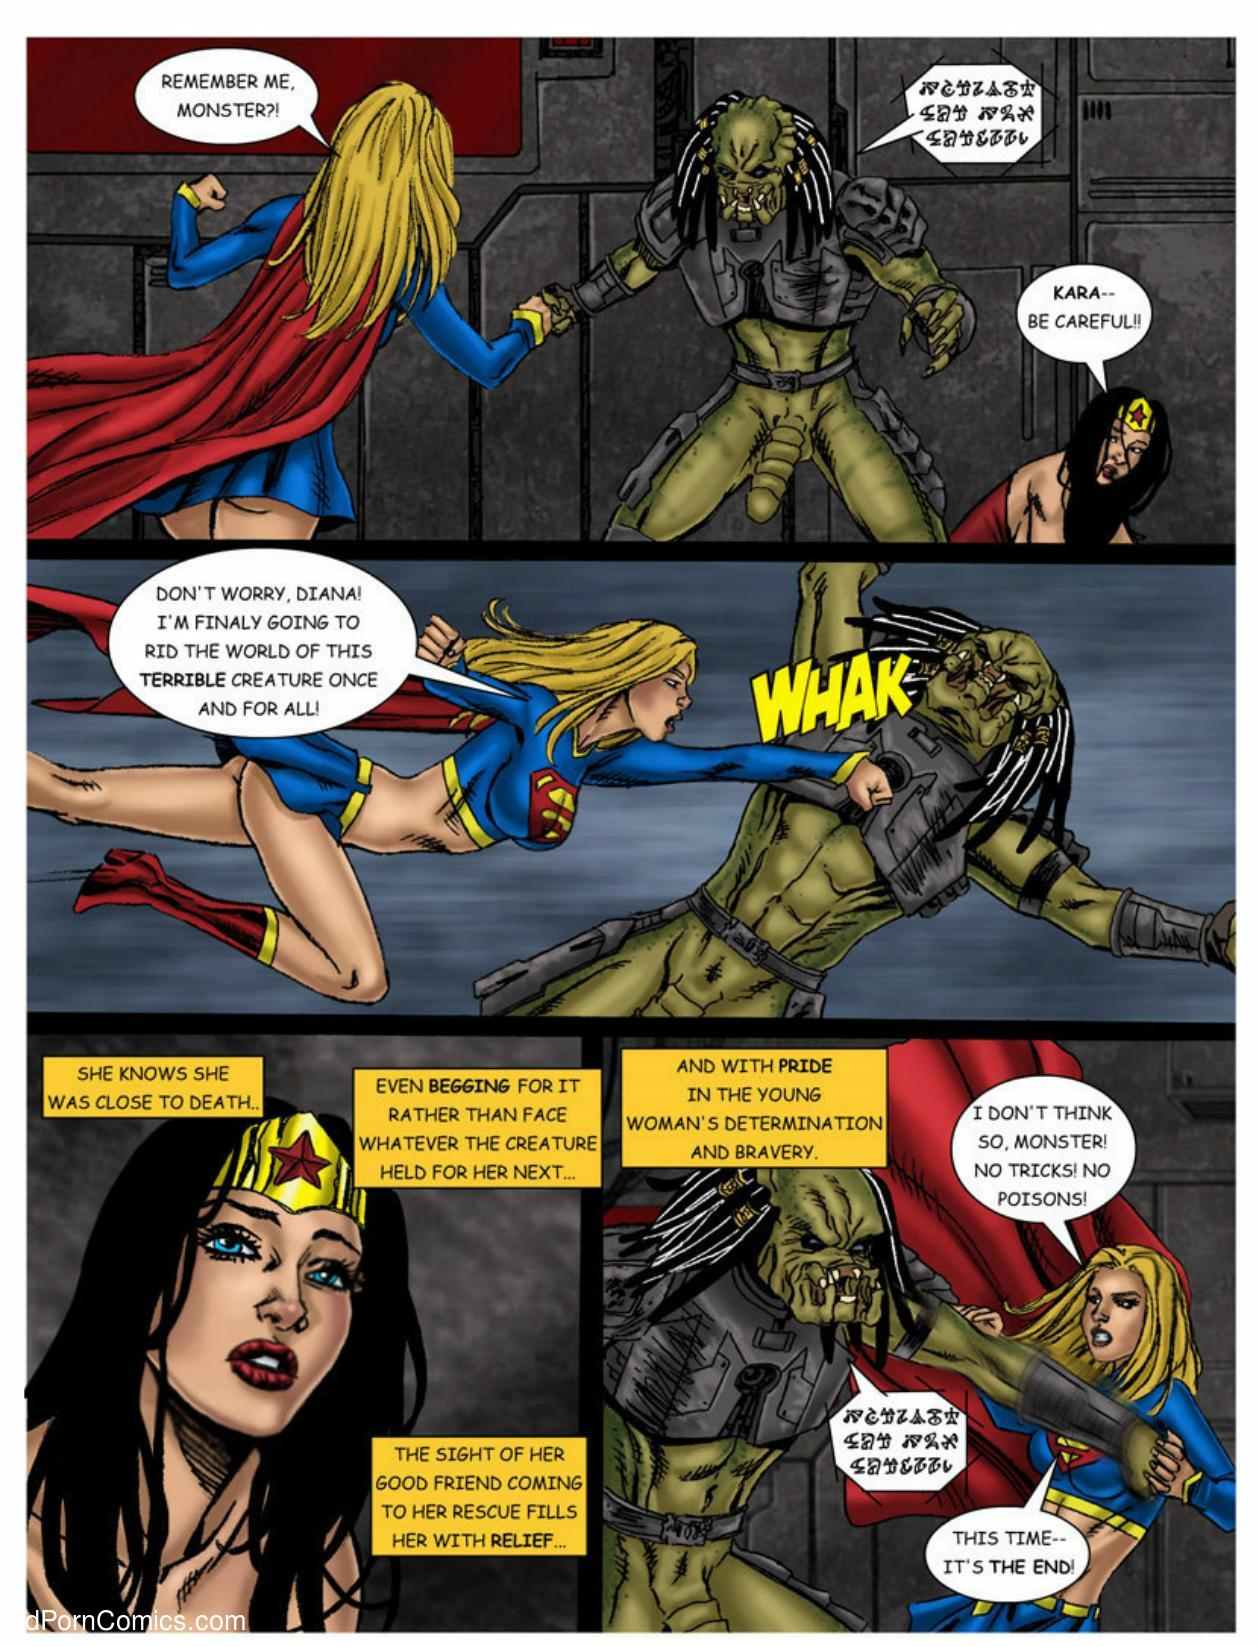 Wonder Woman vs Predator – Part 1-373 free sex comic